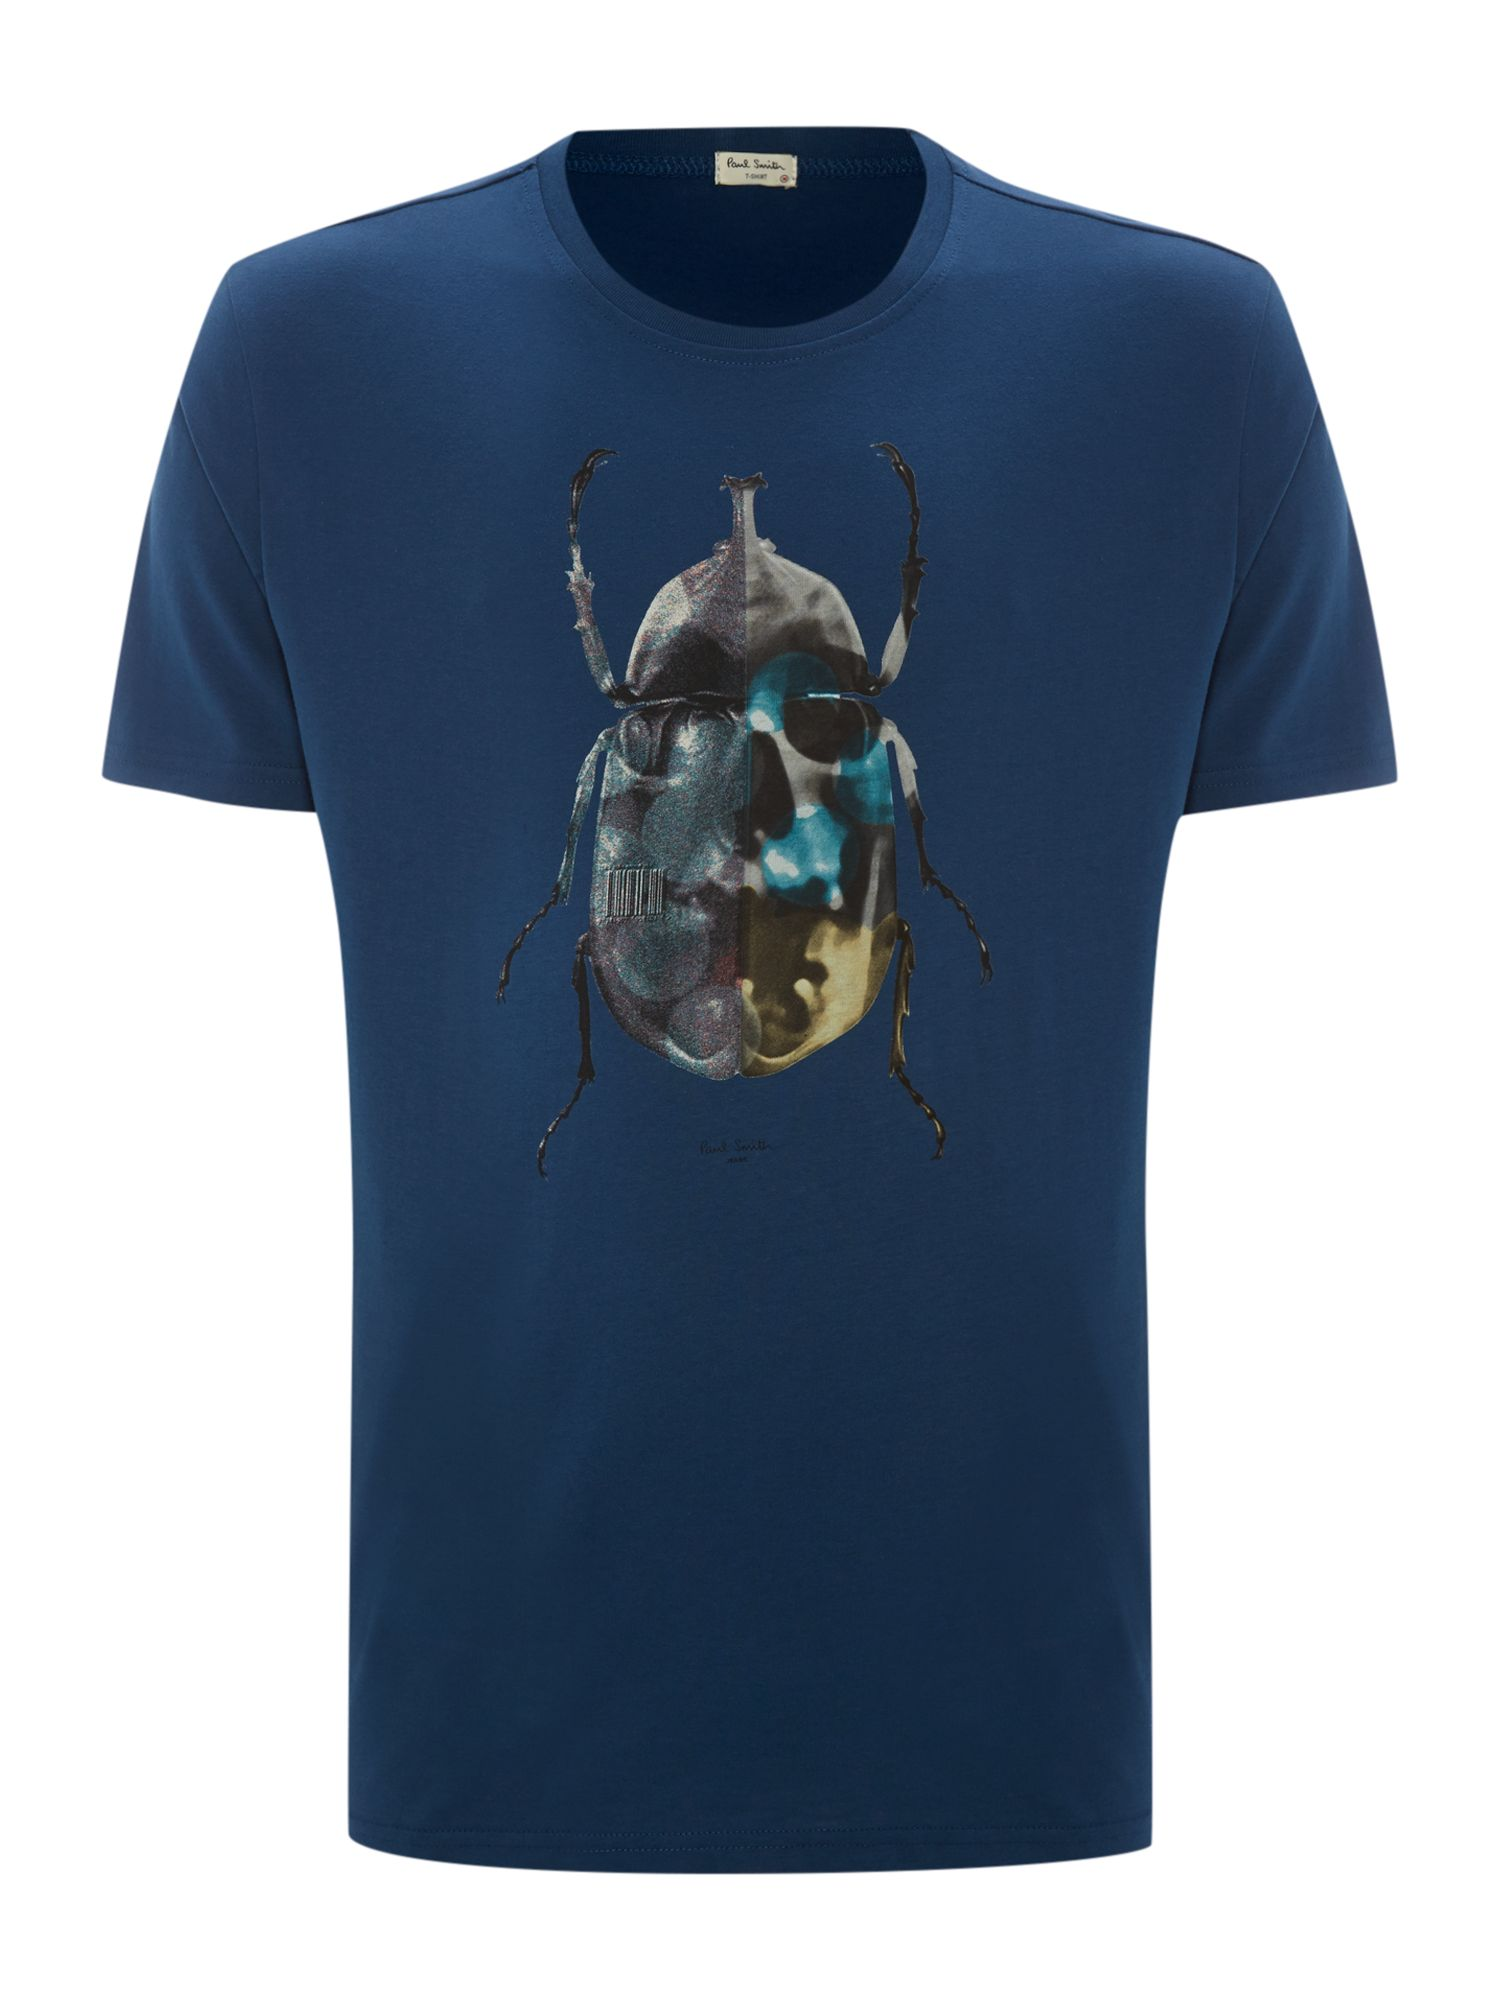 Beetle t shirt